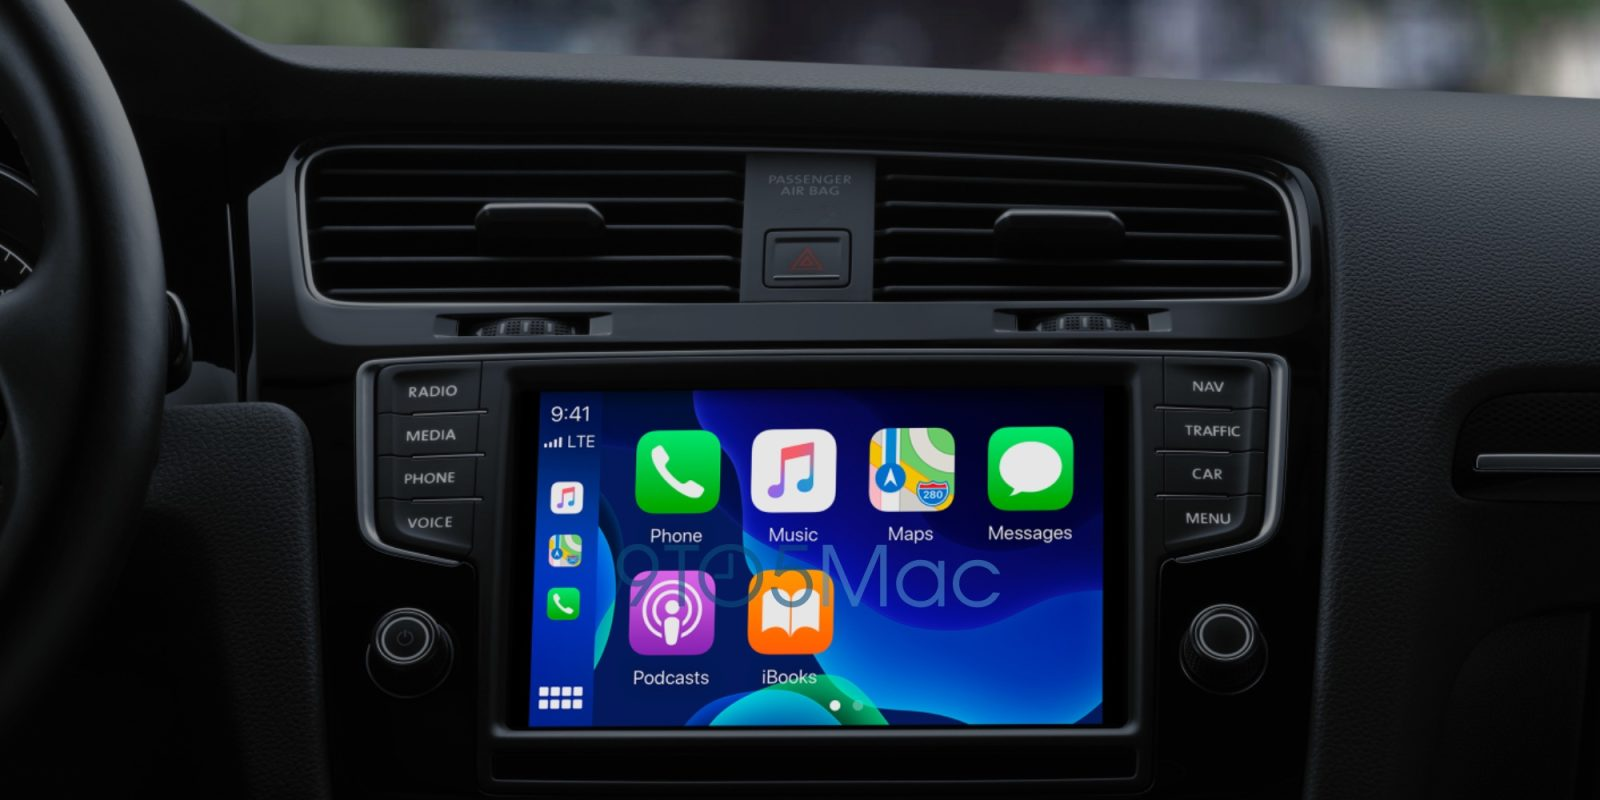 apple-carplay-ios-14.jpg?quality=82&strip=all&w=1600